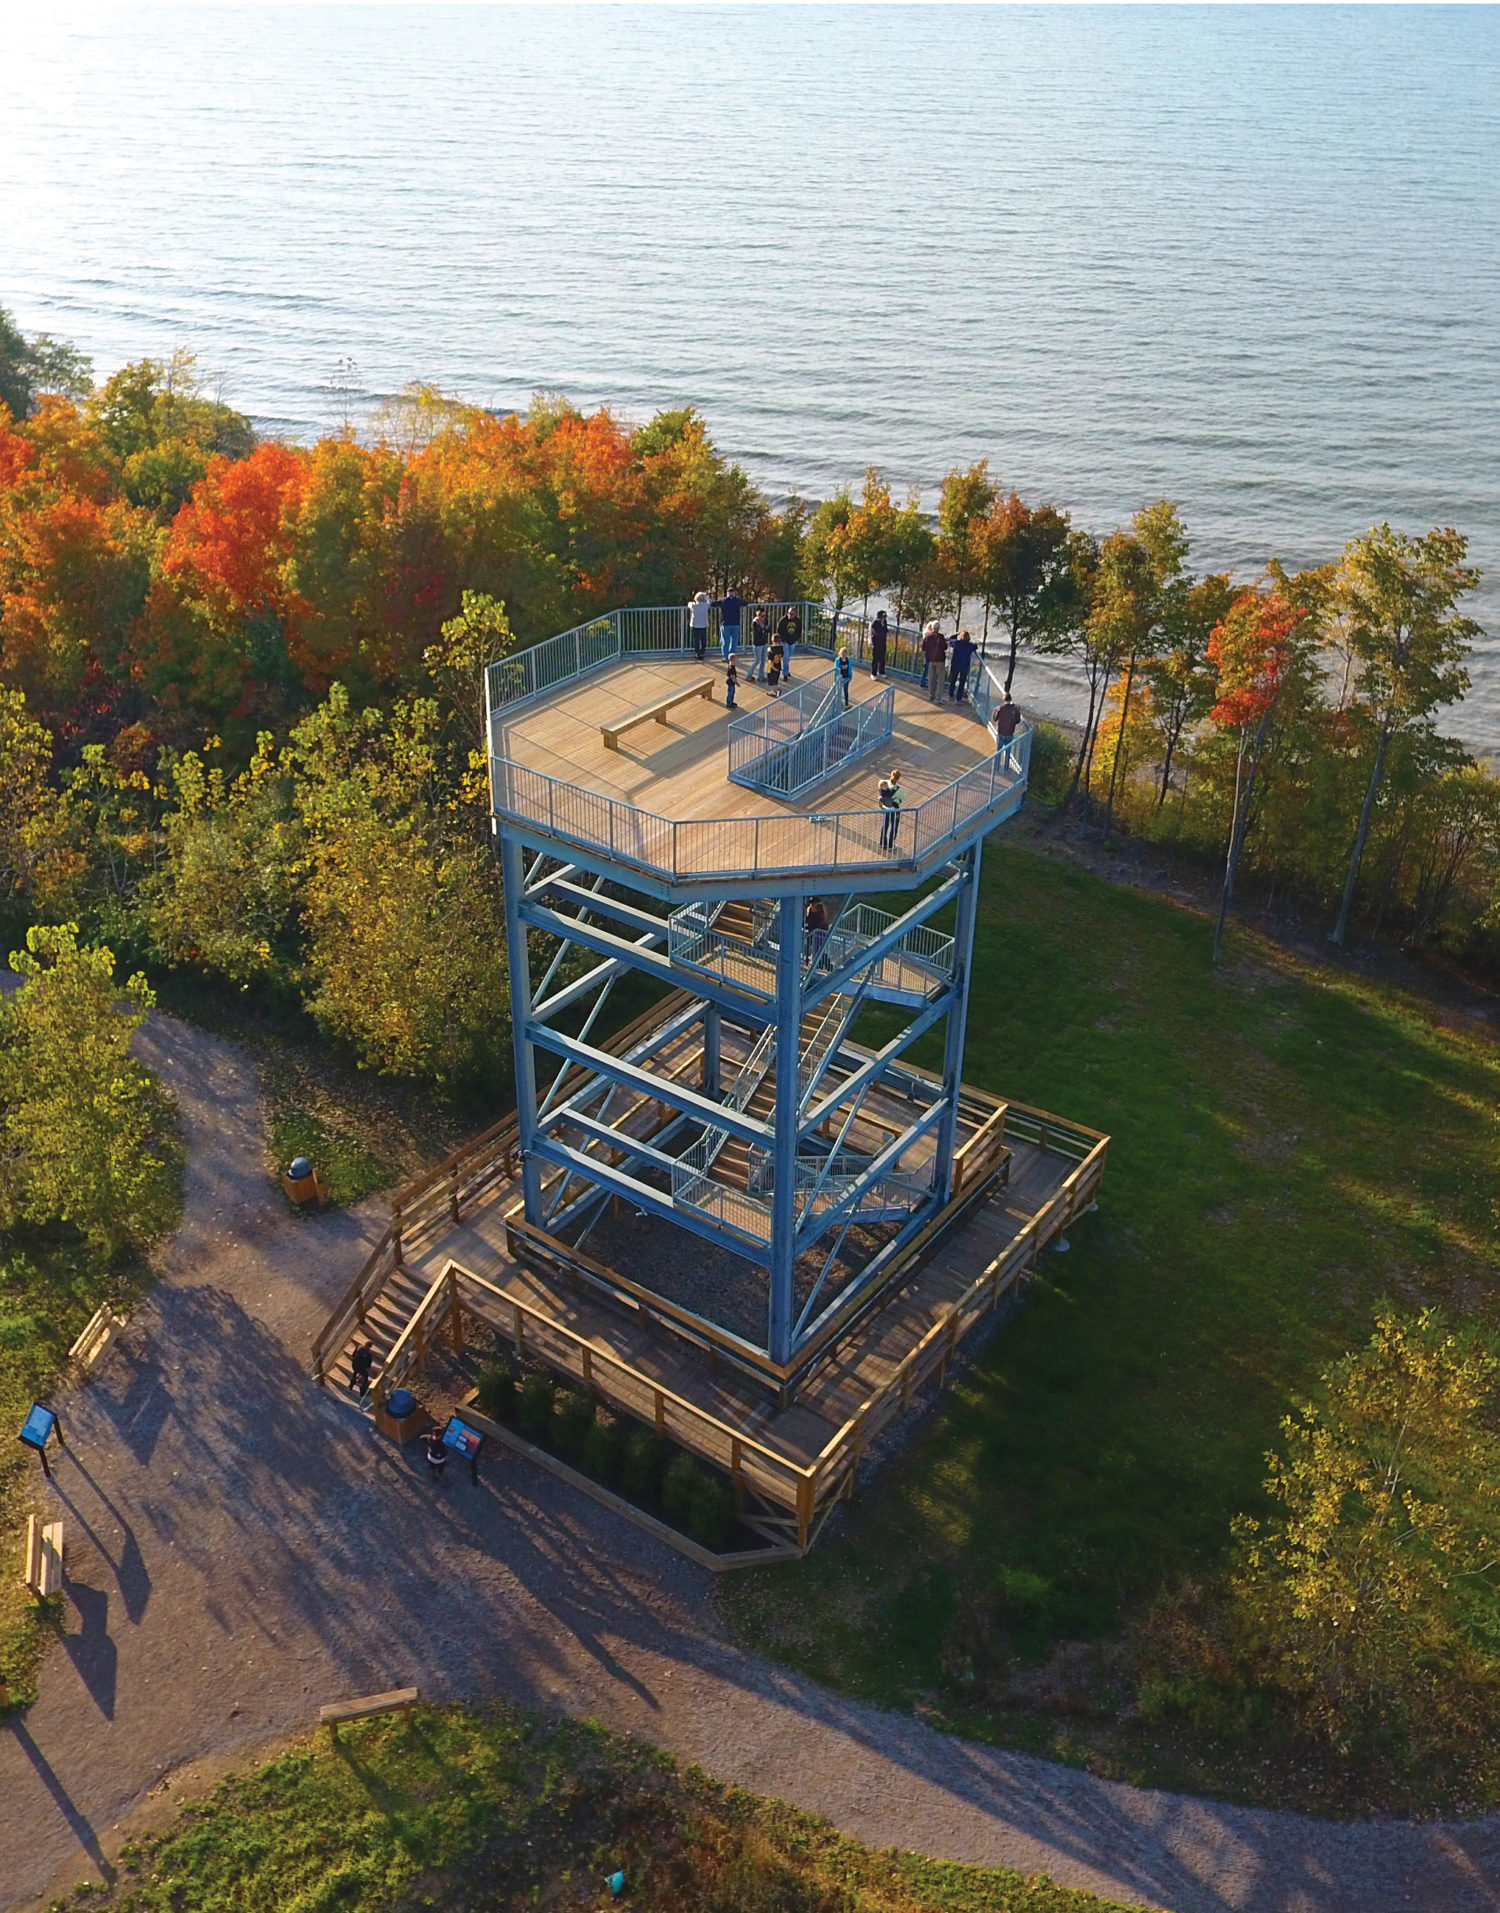 https://lms86.com/wp-content/uploads/2018/11/Lake-Erie-Bluffs-Observation-Tower-e1541120583355.jpg